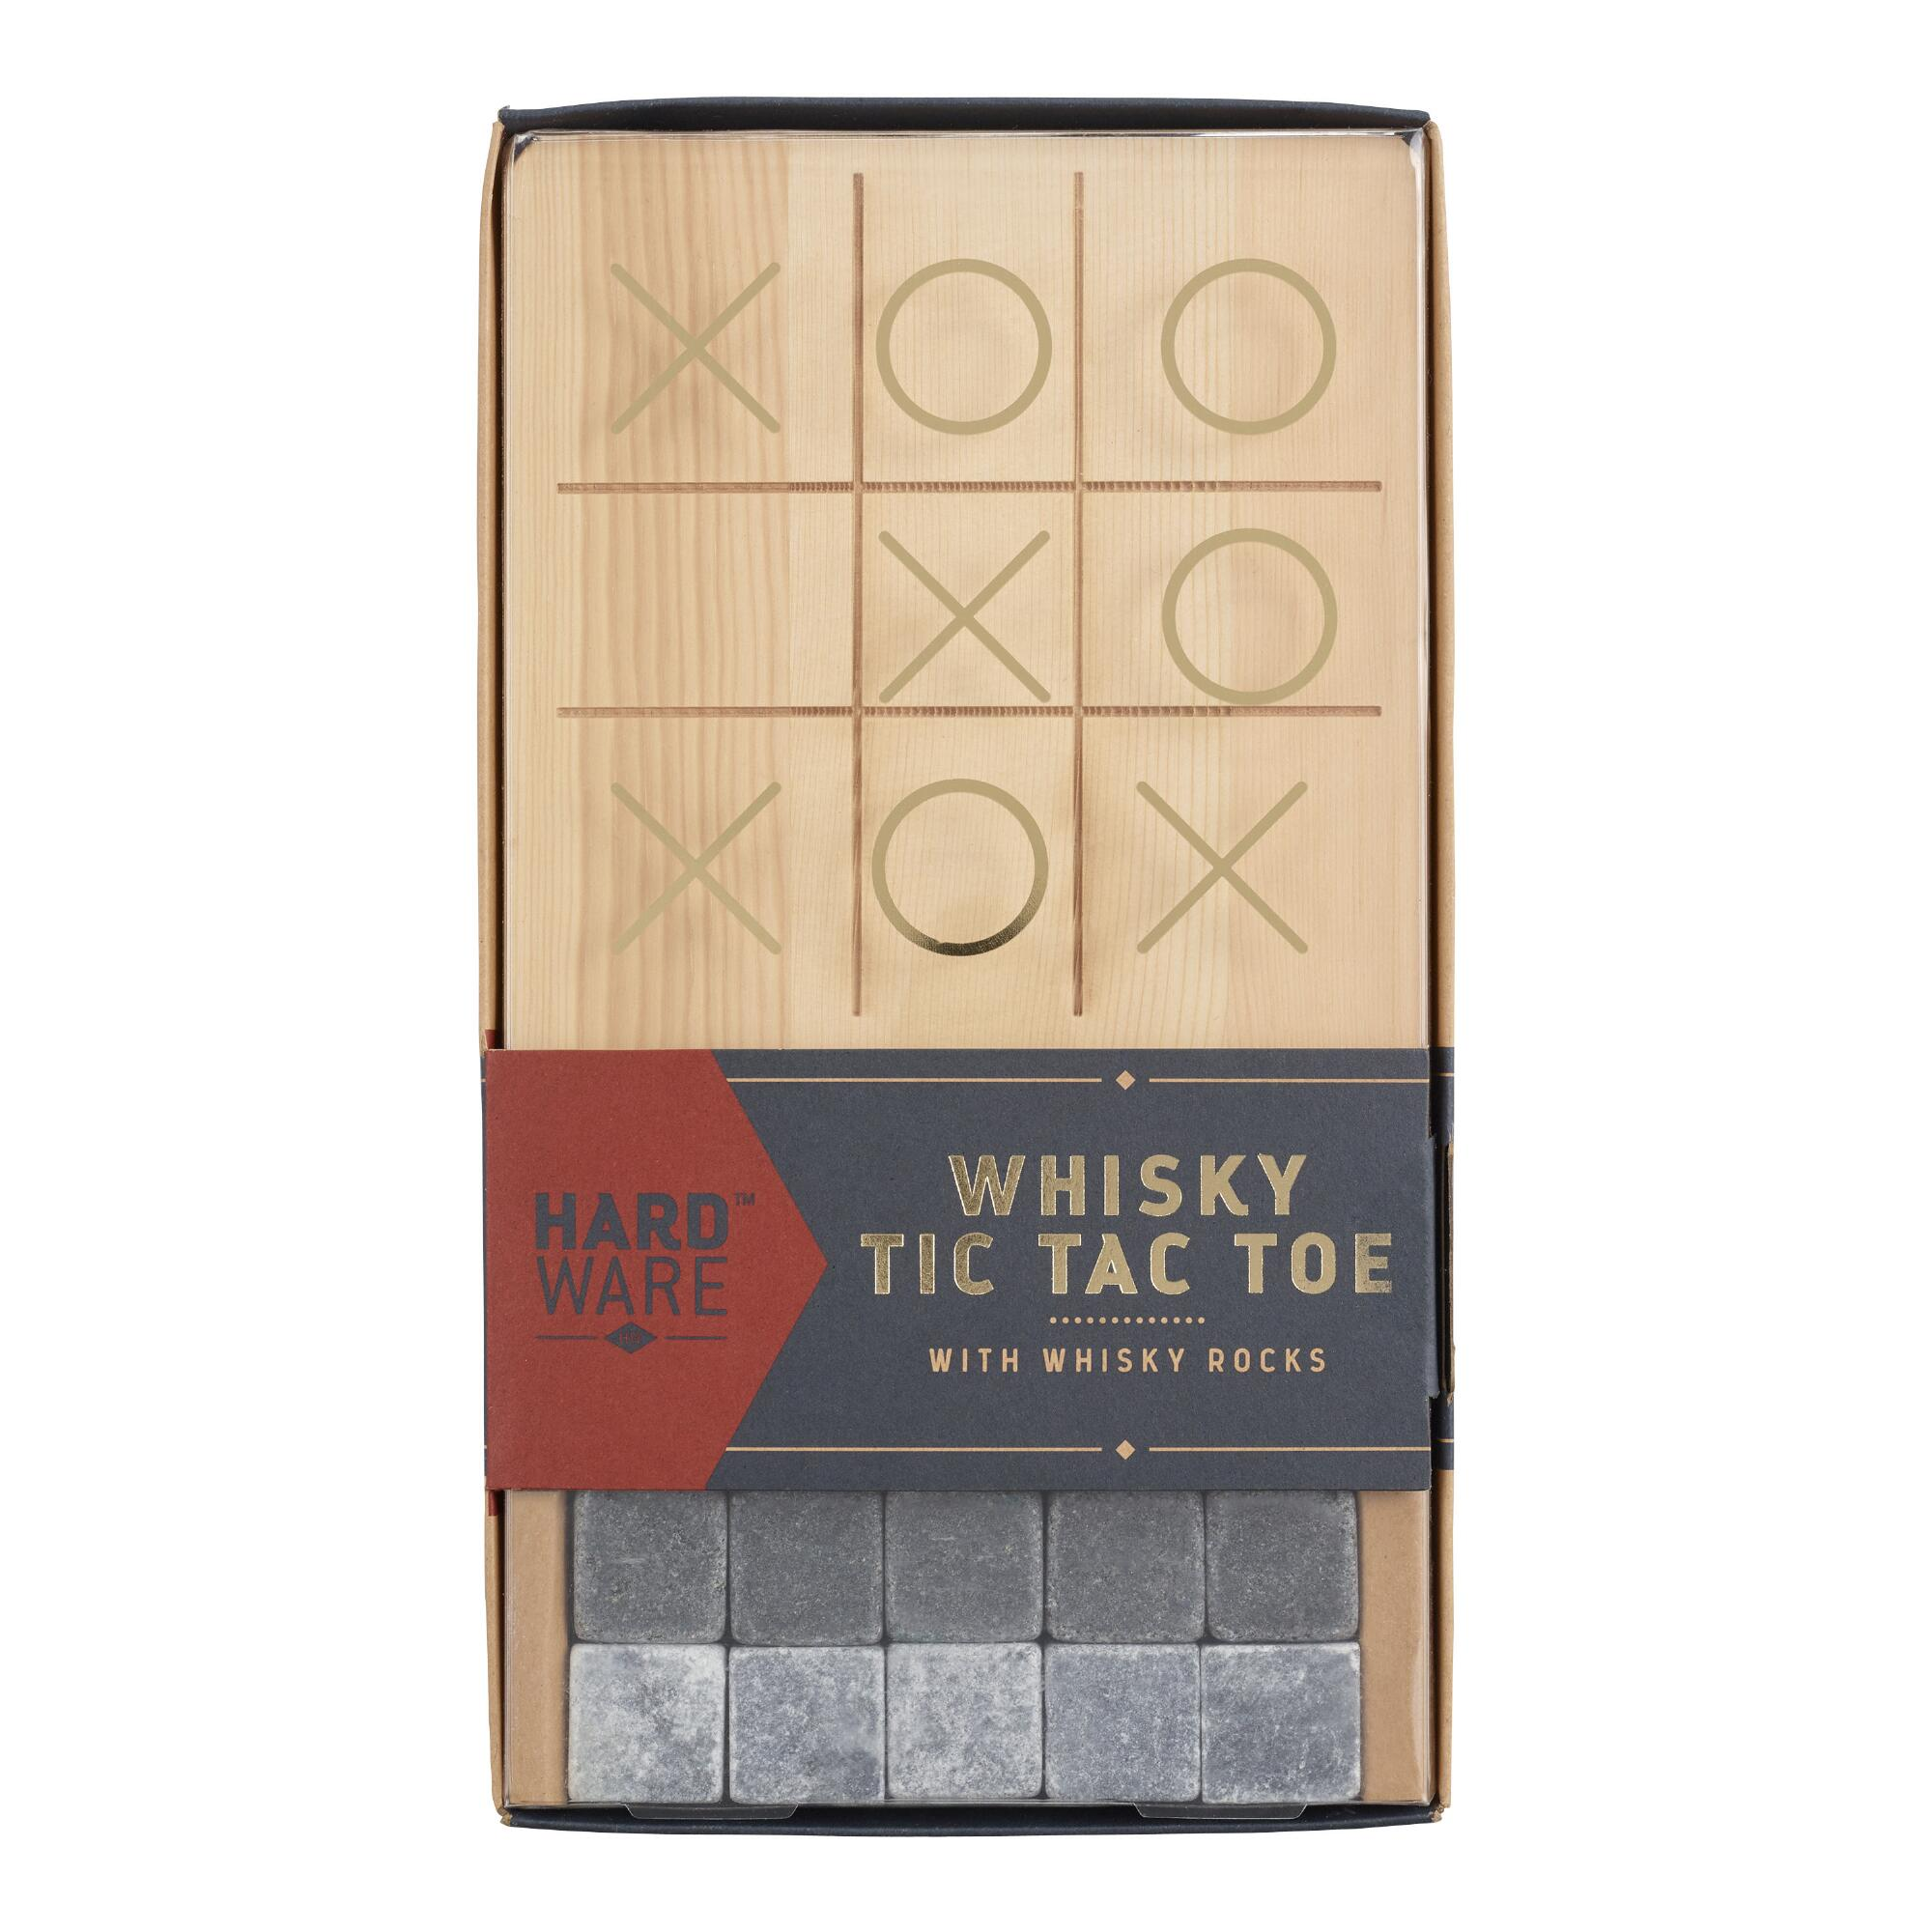 Gentlemen\\\'s Hardware Whisky Tic Tac Toe Gift Set $17.99